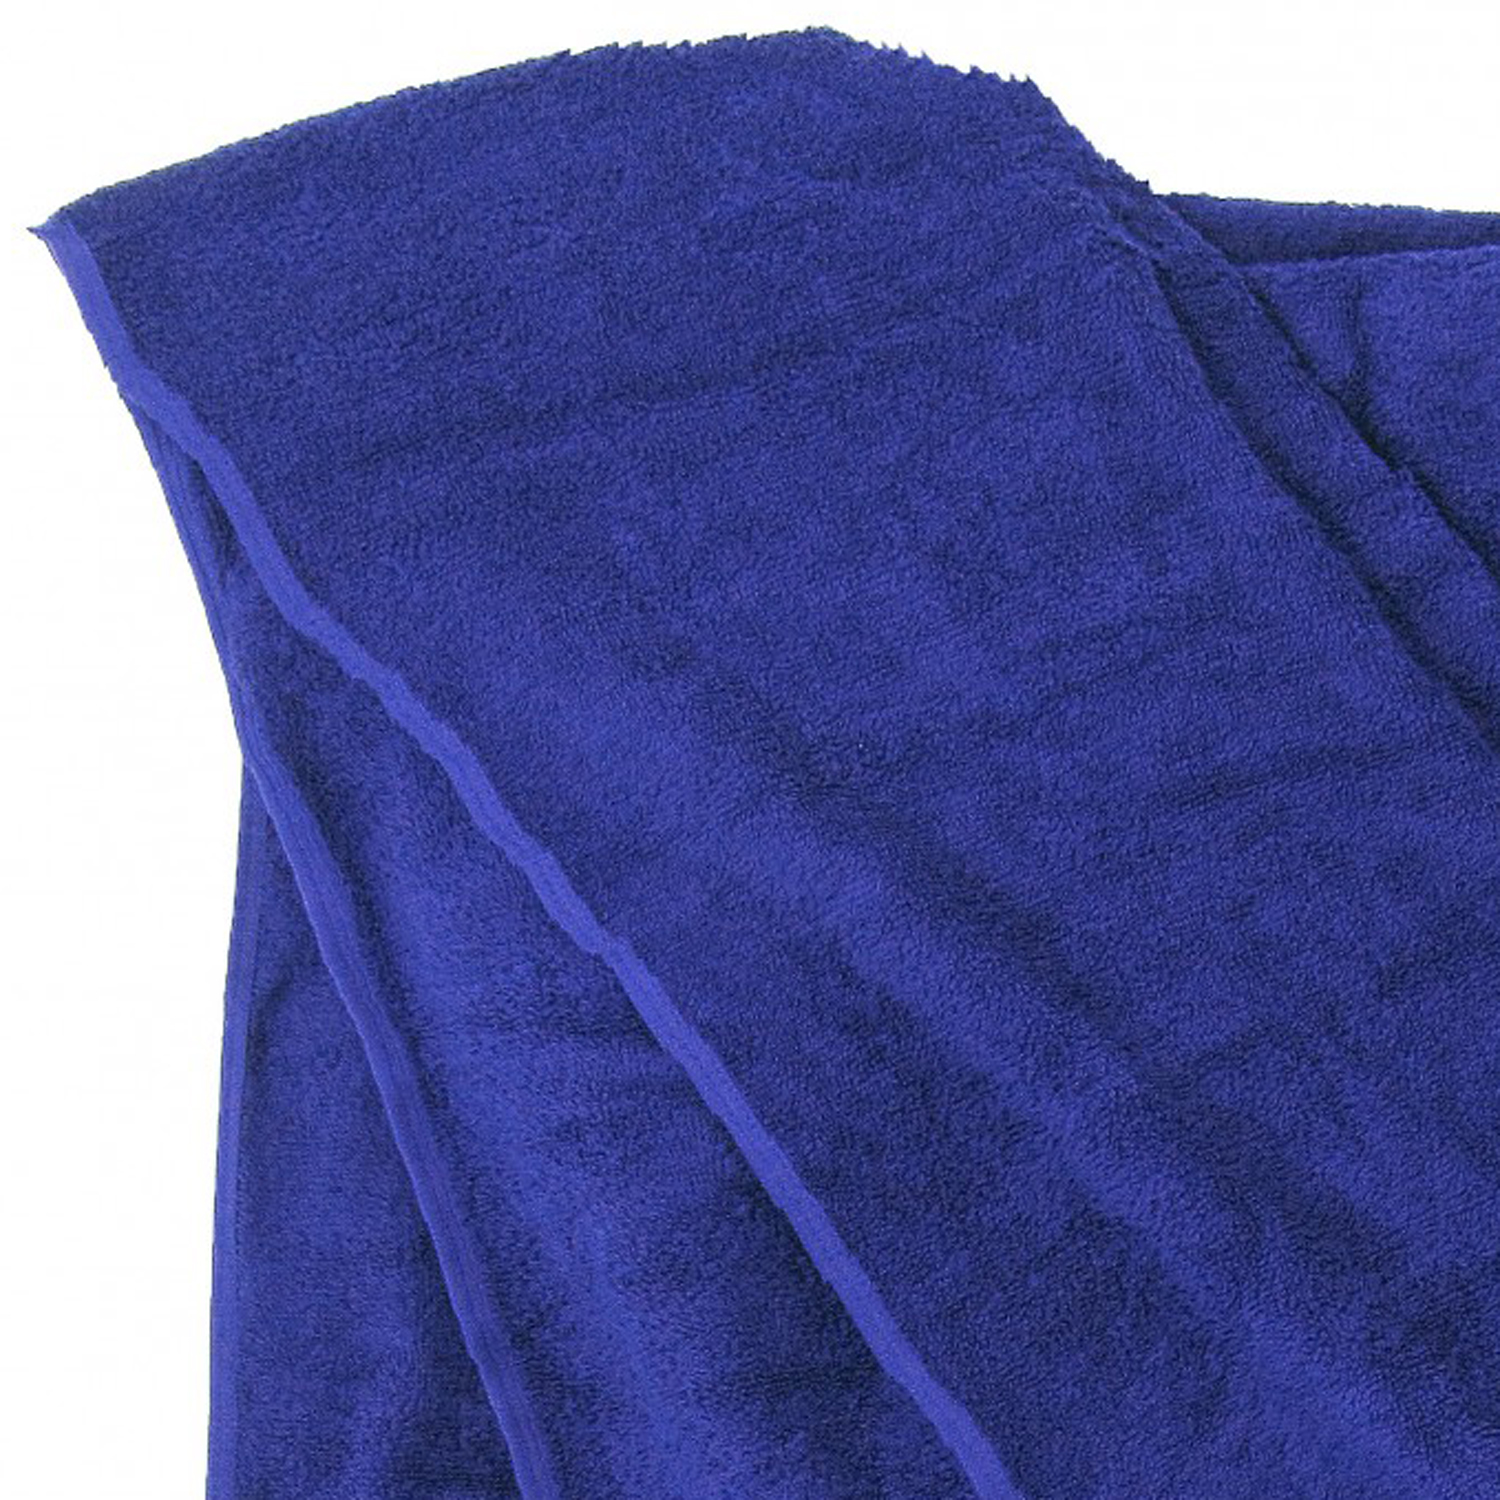 Detail Image to Bath towel in royal blue by Kapart in large sizes 100x220 cm and 155x220 cm